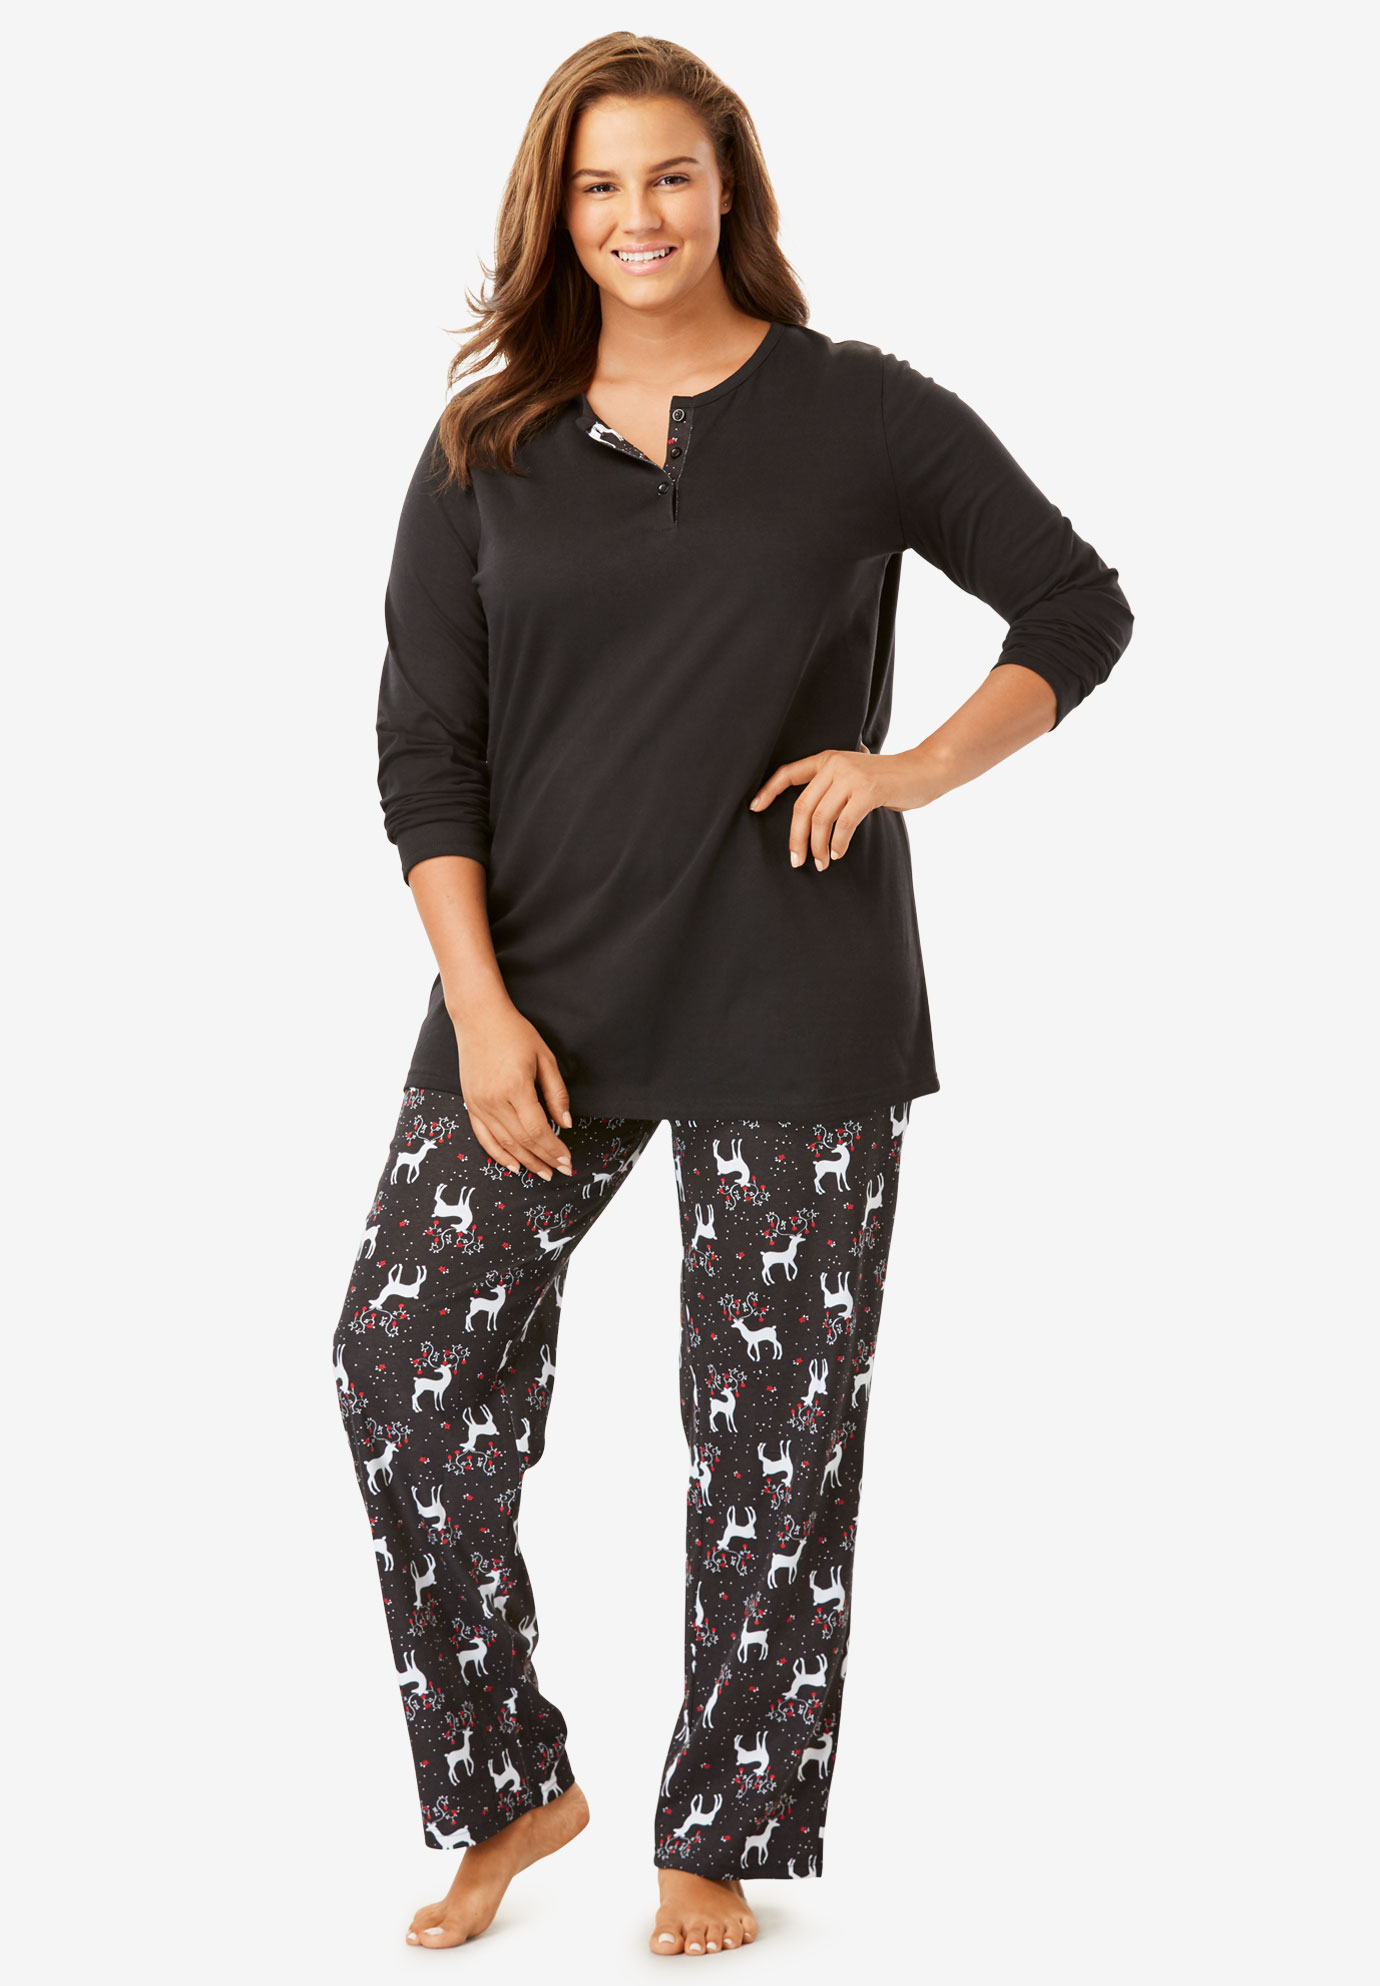 dbdd5d1bb280e 2-Piece PJ Set by Only Necessities®